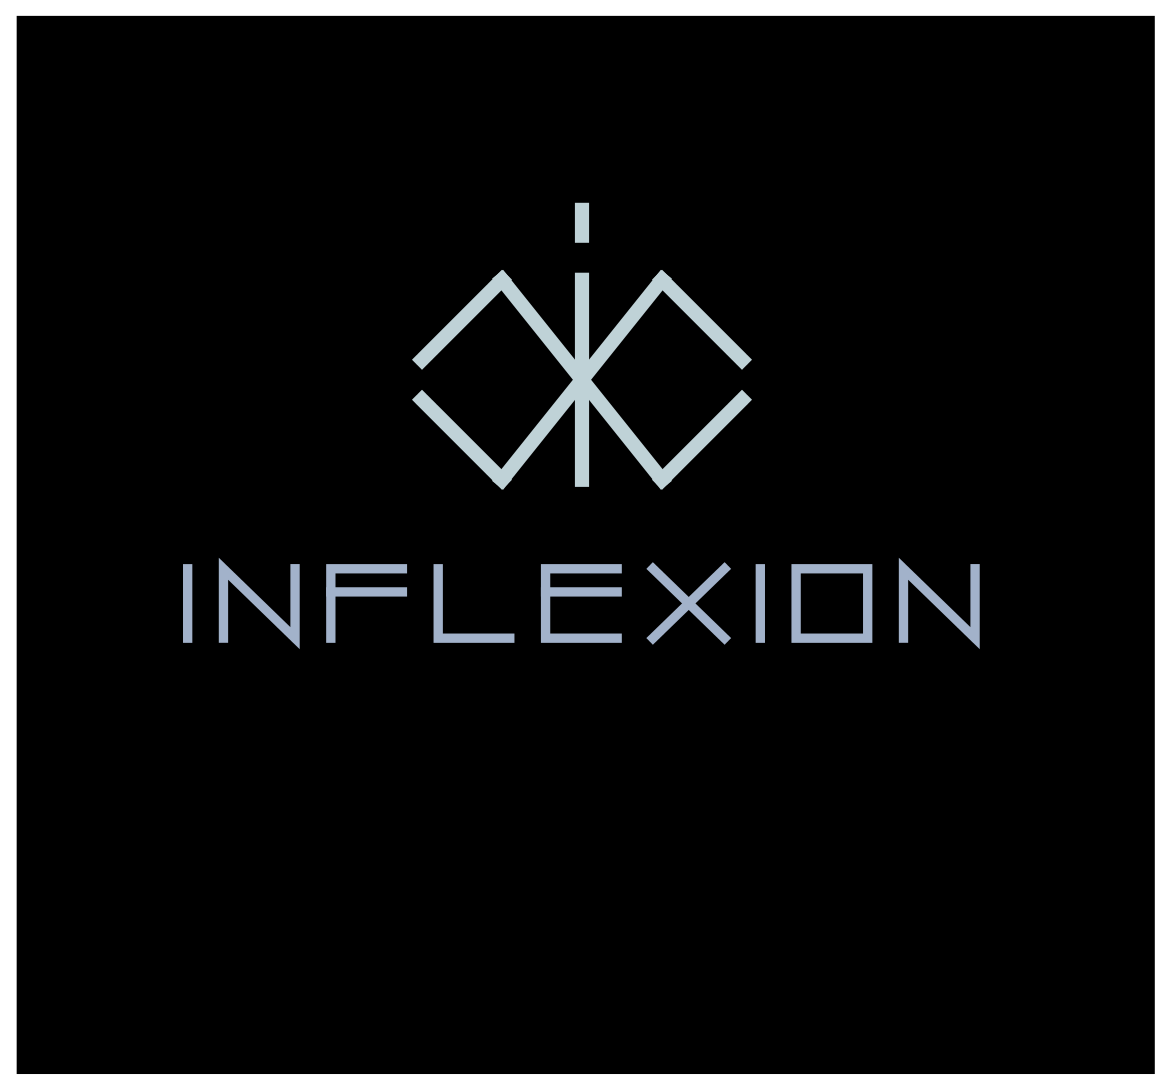 Logo Design by JaroslavProcka - Entry No. 120 in the Logo Design Contest Professional Logo Design for Inflekxion.